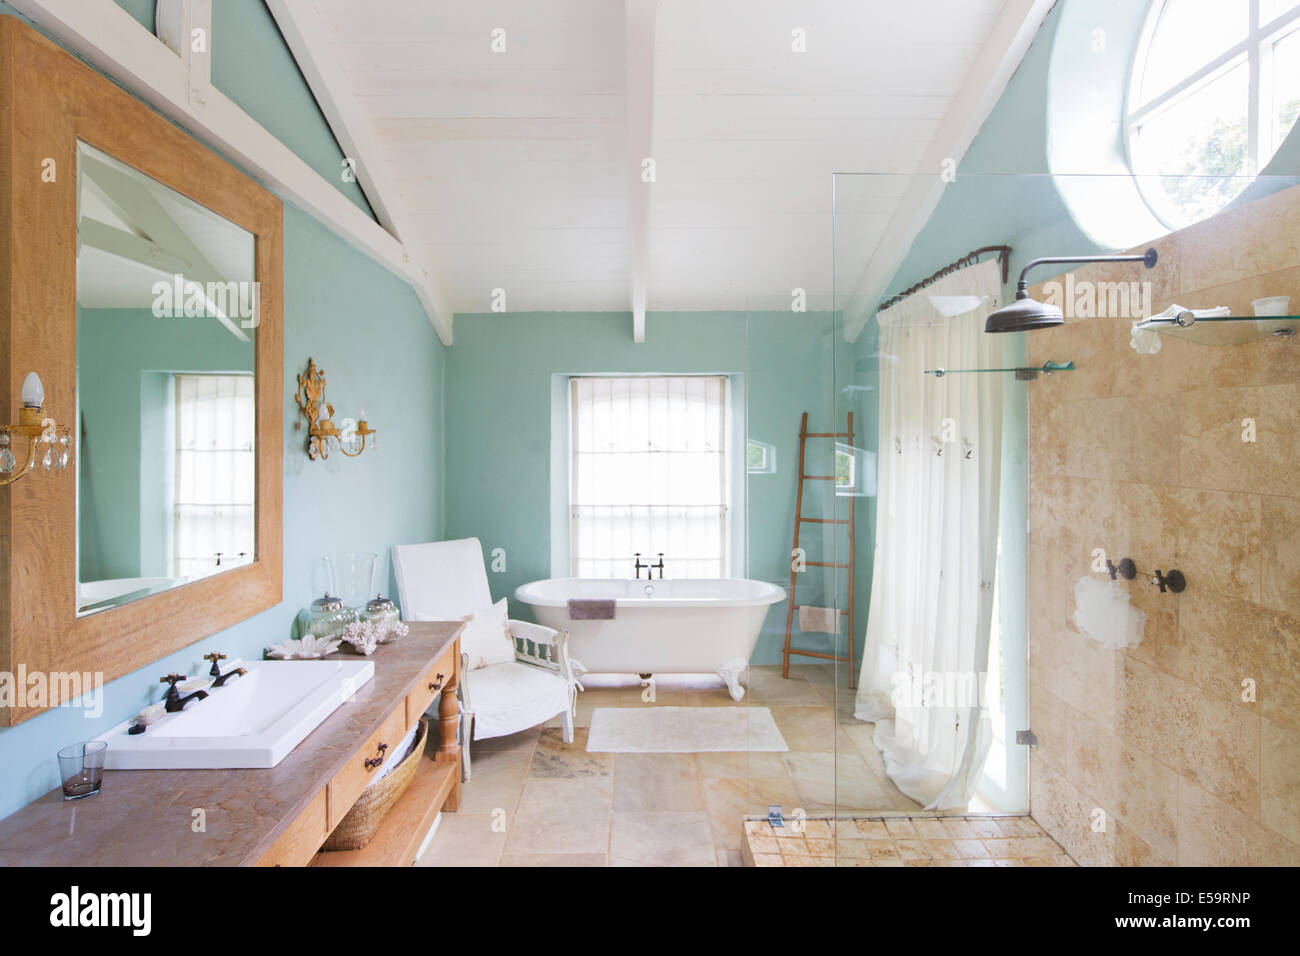 Bathtub and shower in rustic bathroom - Stock Image